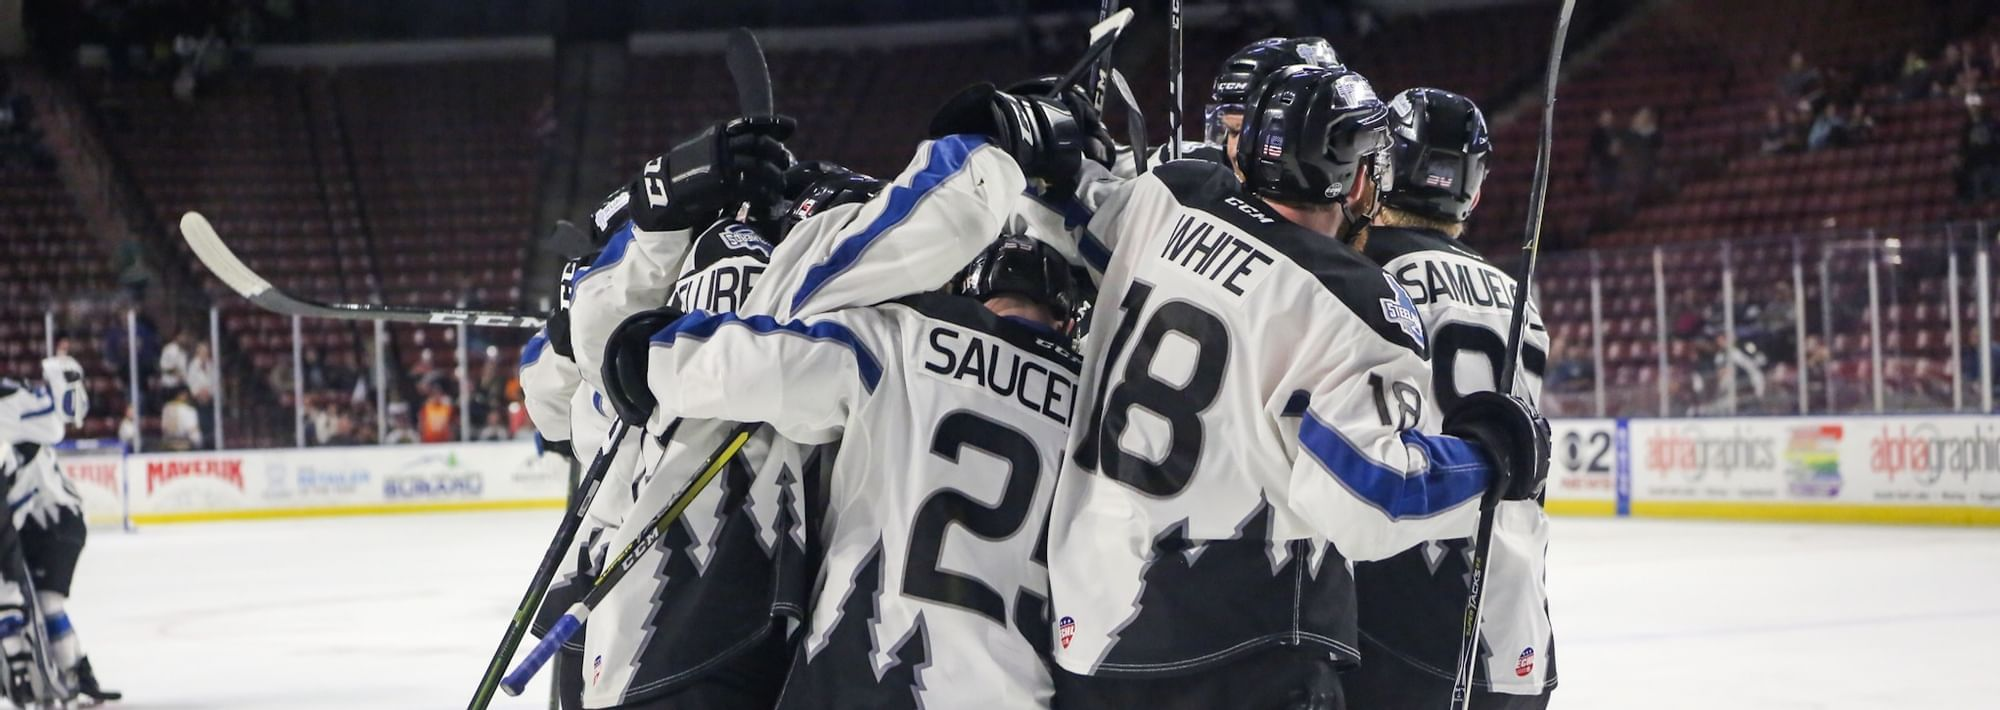 a group of hockey players in a group huddle